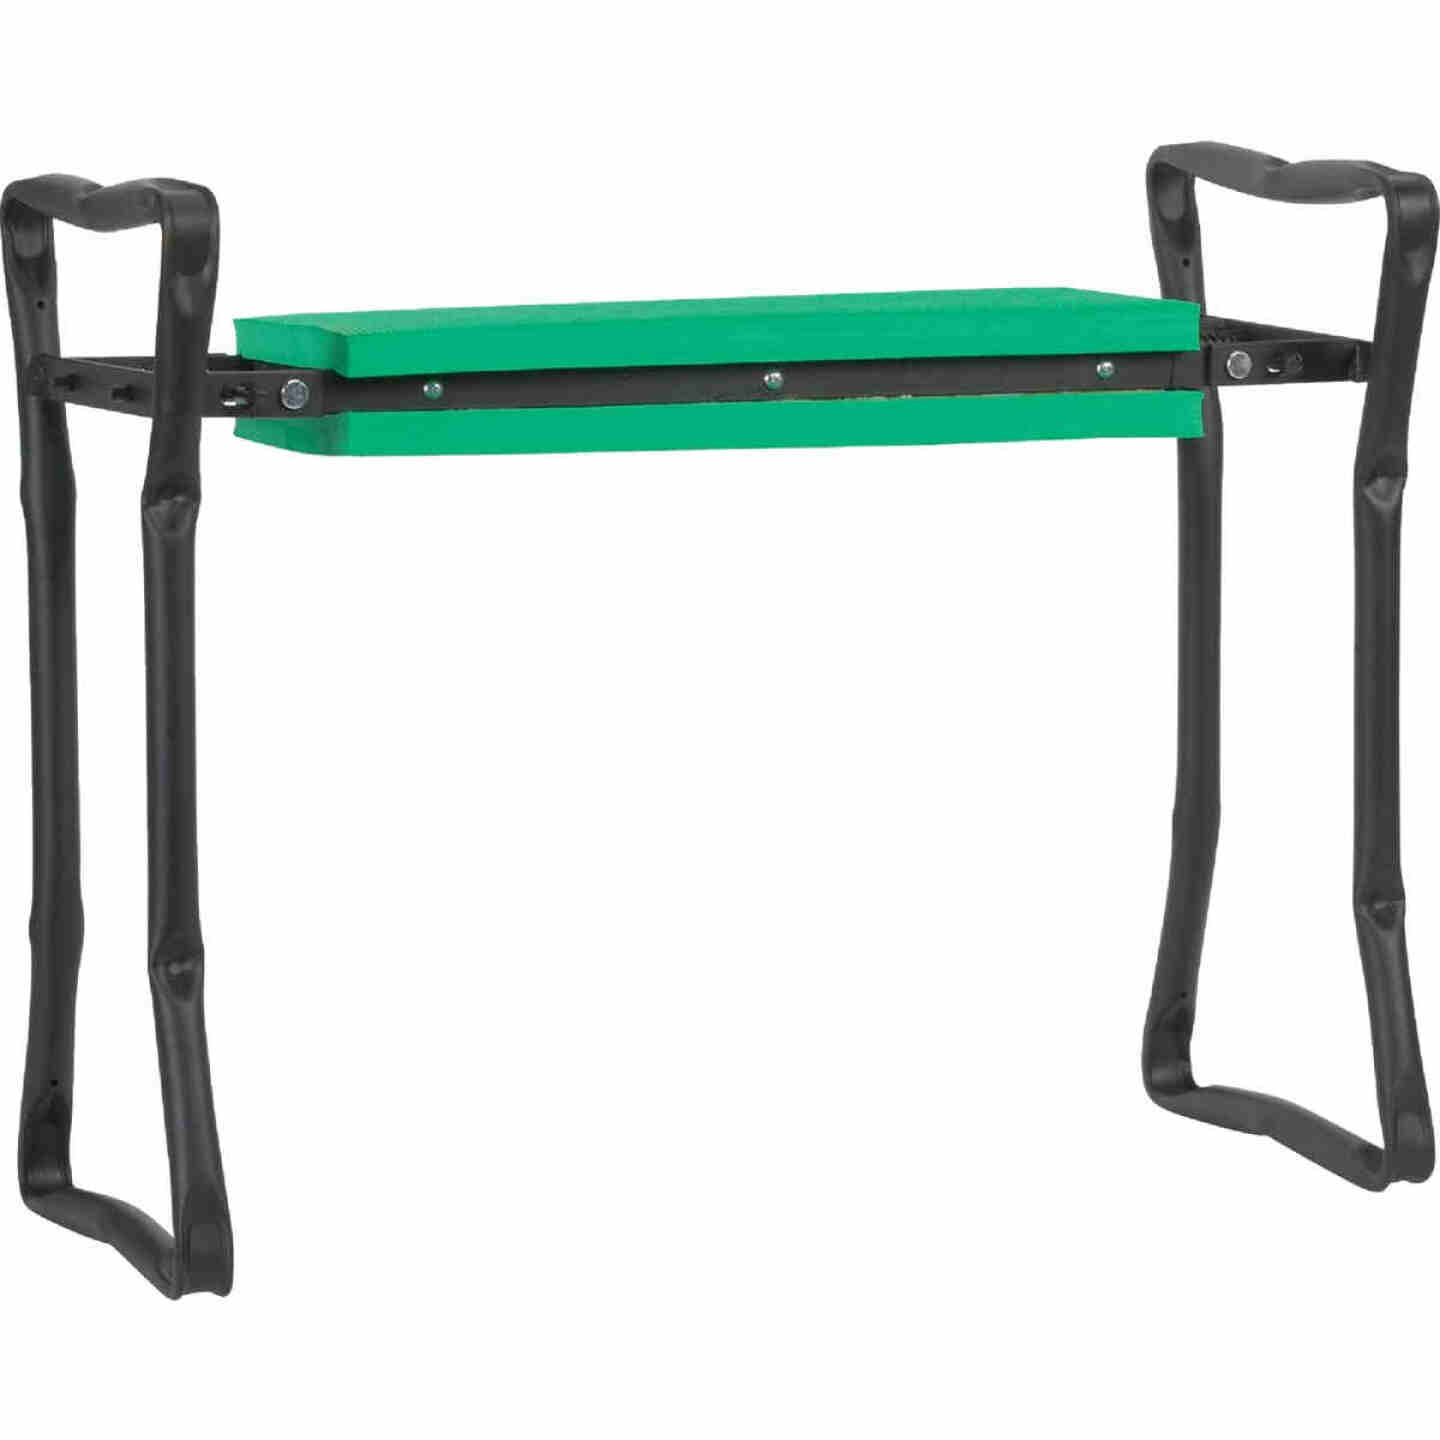 Best Garden Green Foam Pad w/Black Steel Frame Garden Kneeler Bench Image 1